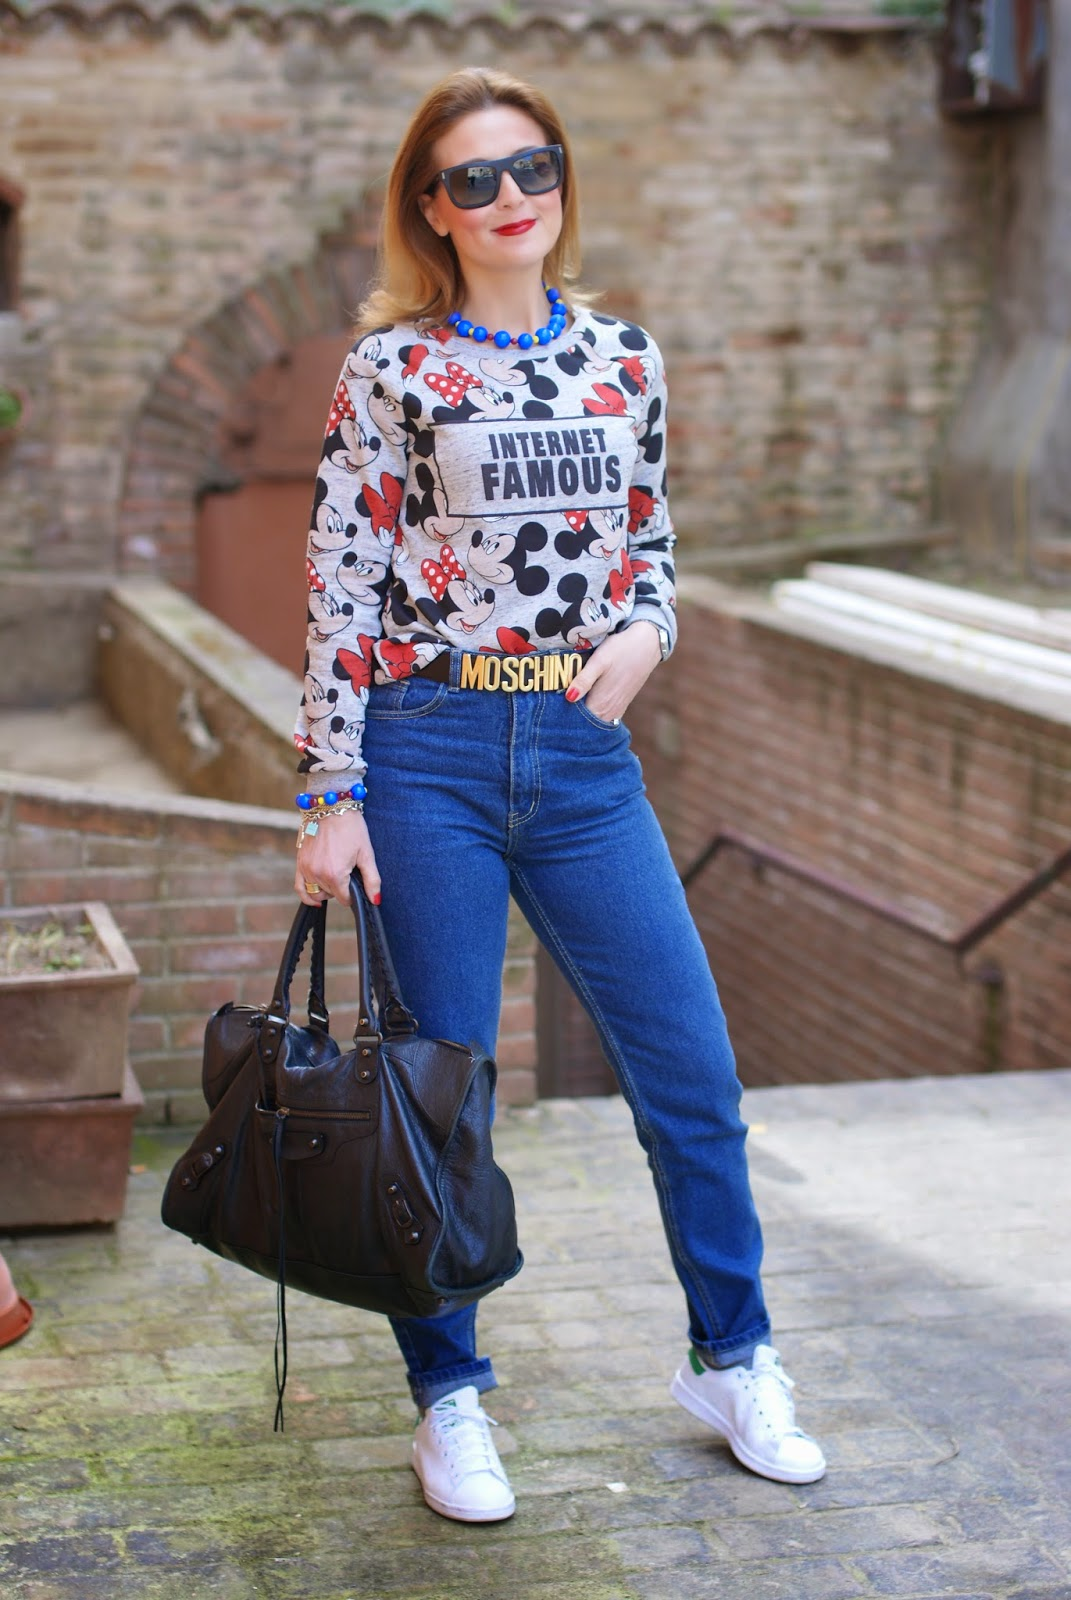 80s Fashion Casual On Pinterest: Internet Famous: 80s Inspired Casual Look